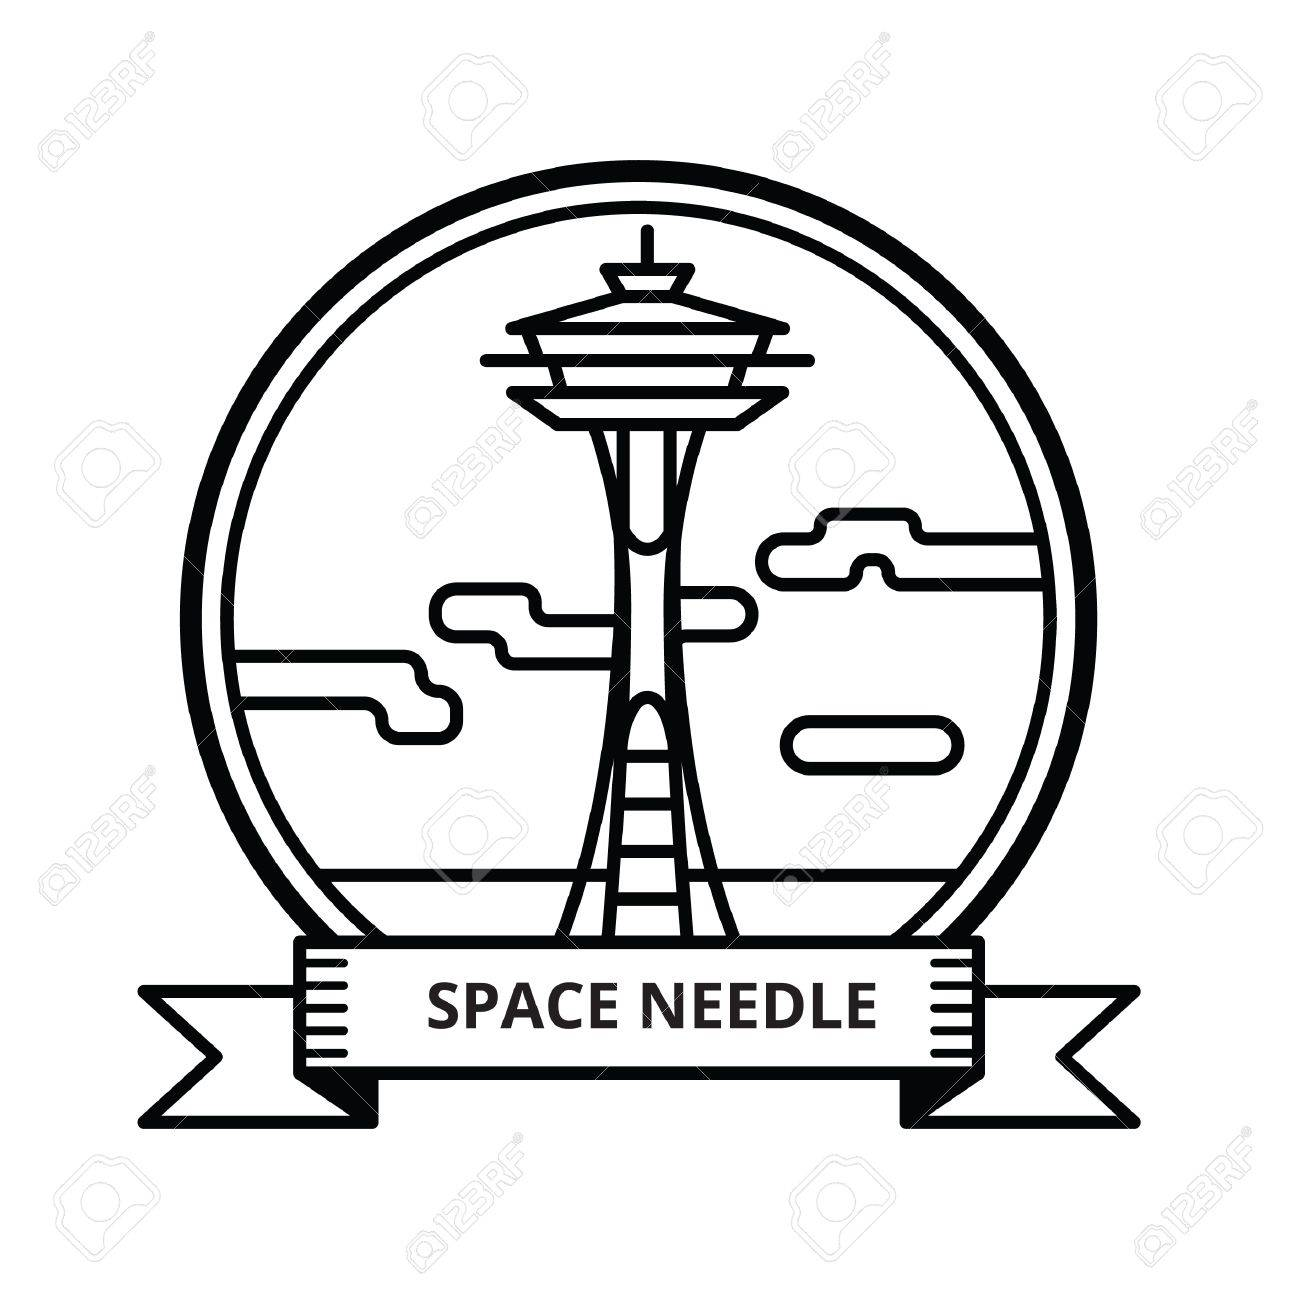 Space needle clipart free vector black and white library Space Needle Clipart | Free download best Space Needle ... vector black and white library